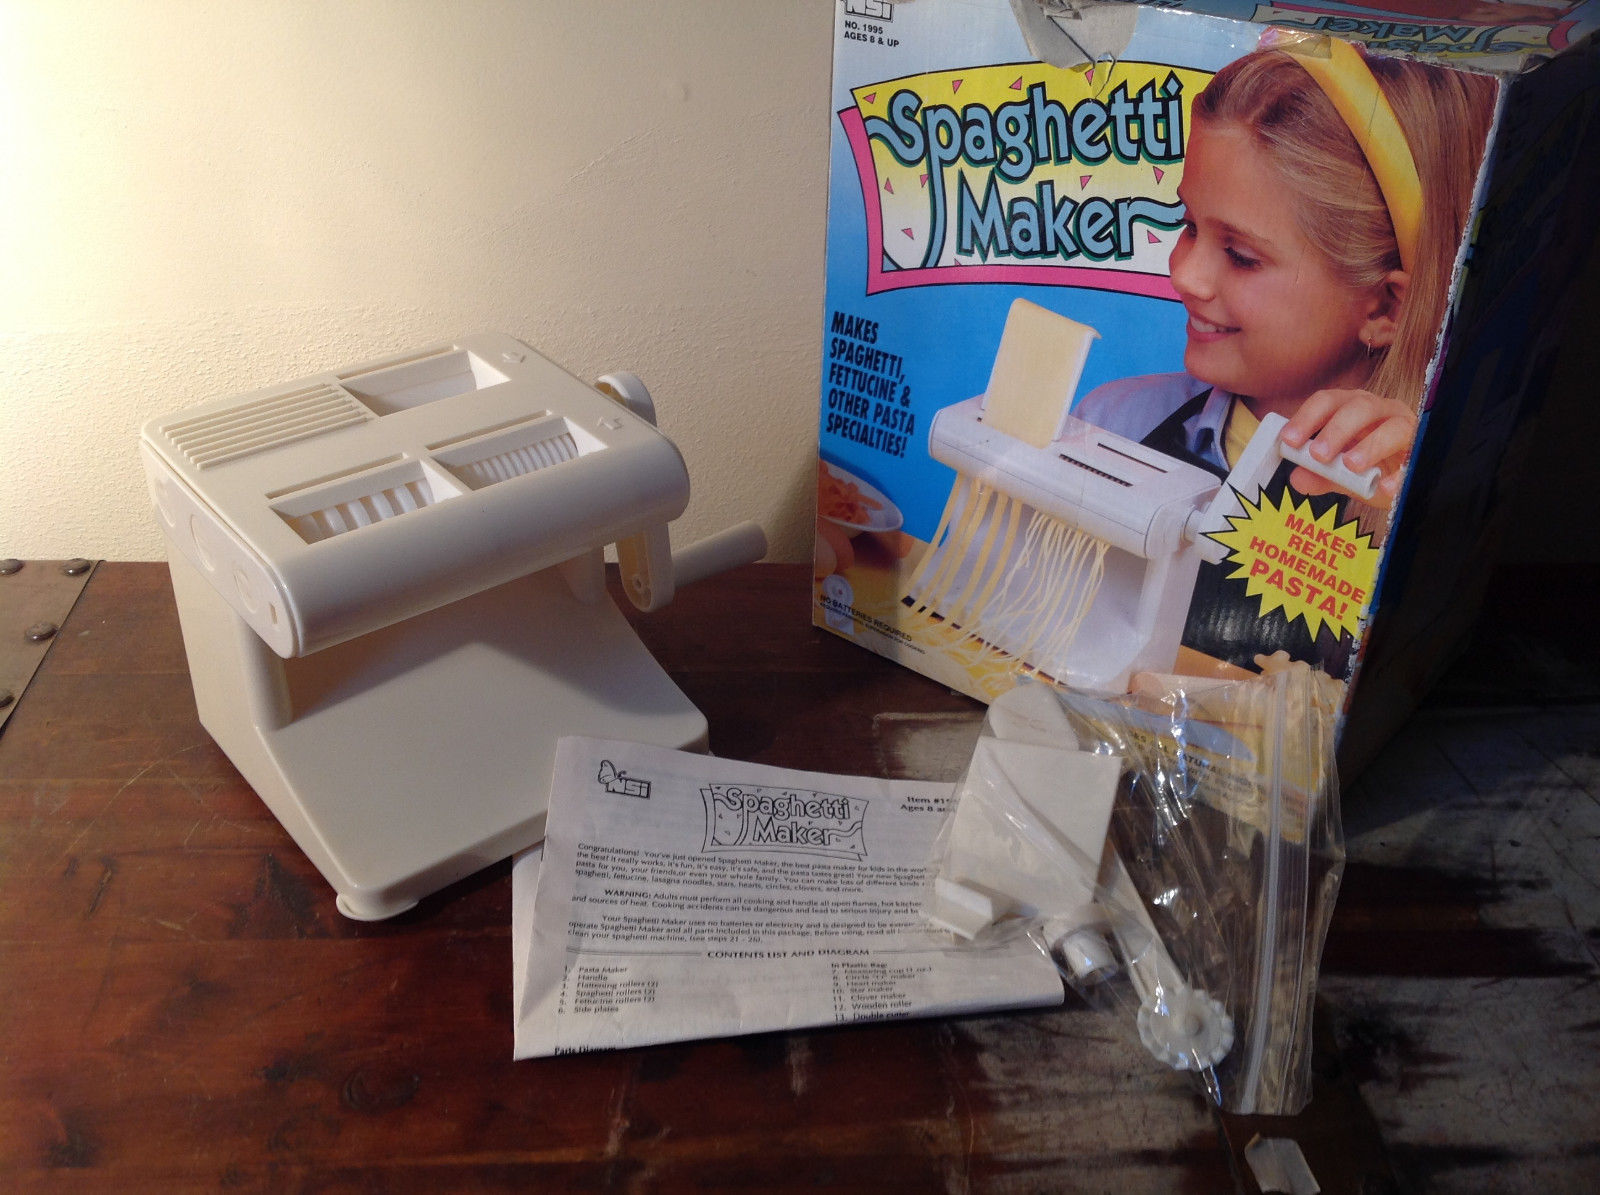 Spaghetti Maker for Kids Makes Real Pasta Compete with Box and Instructions